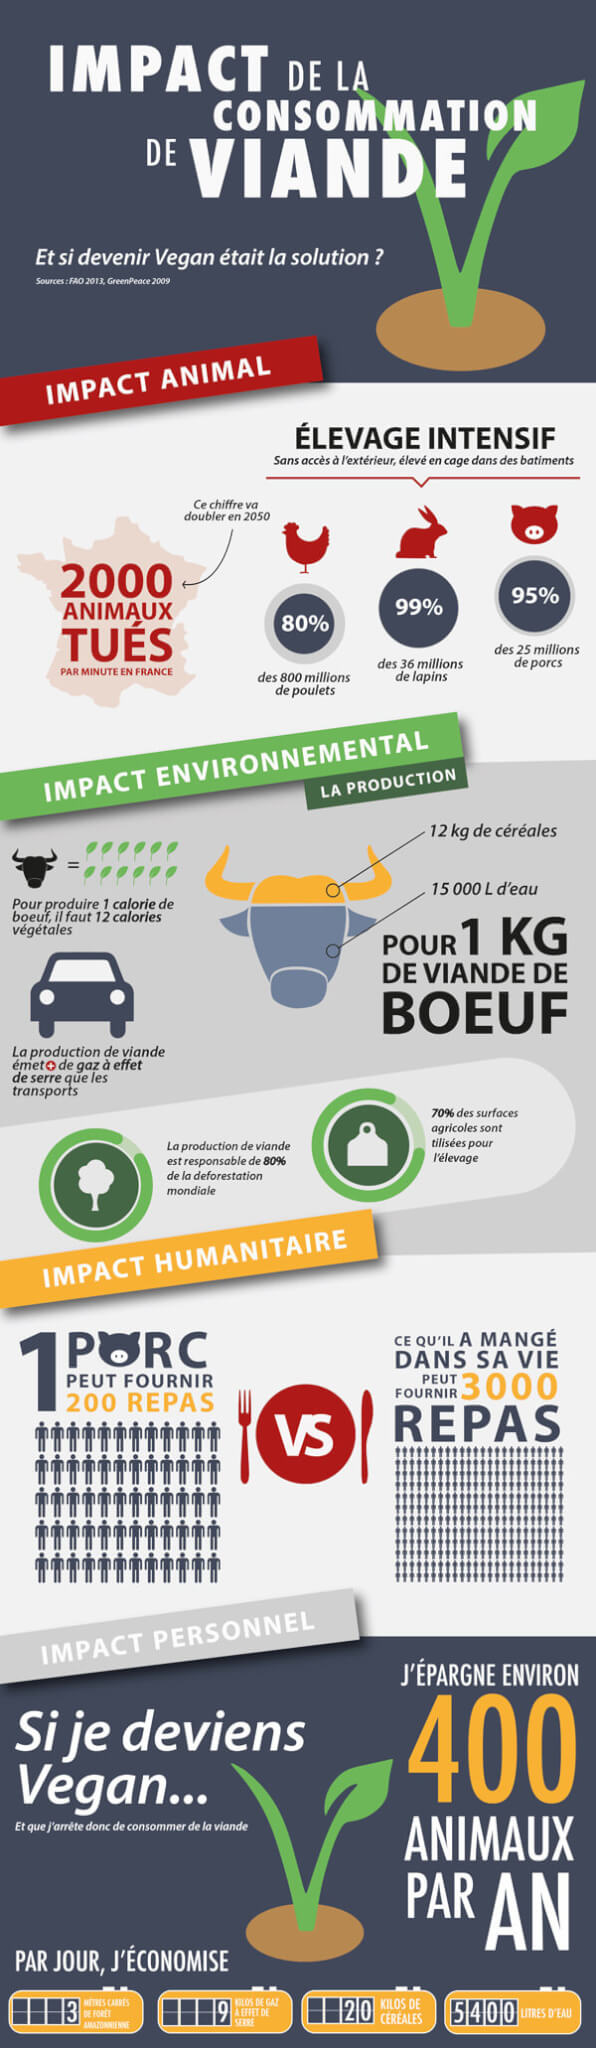 exemple infographie marine guyot